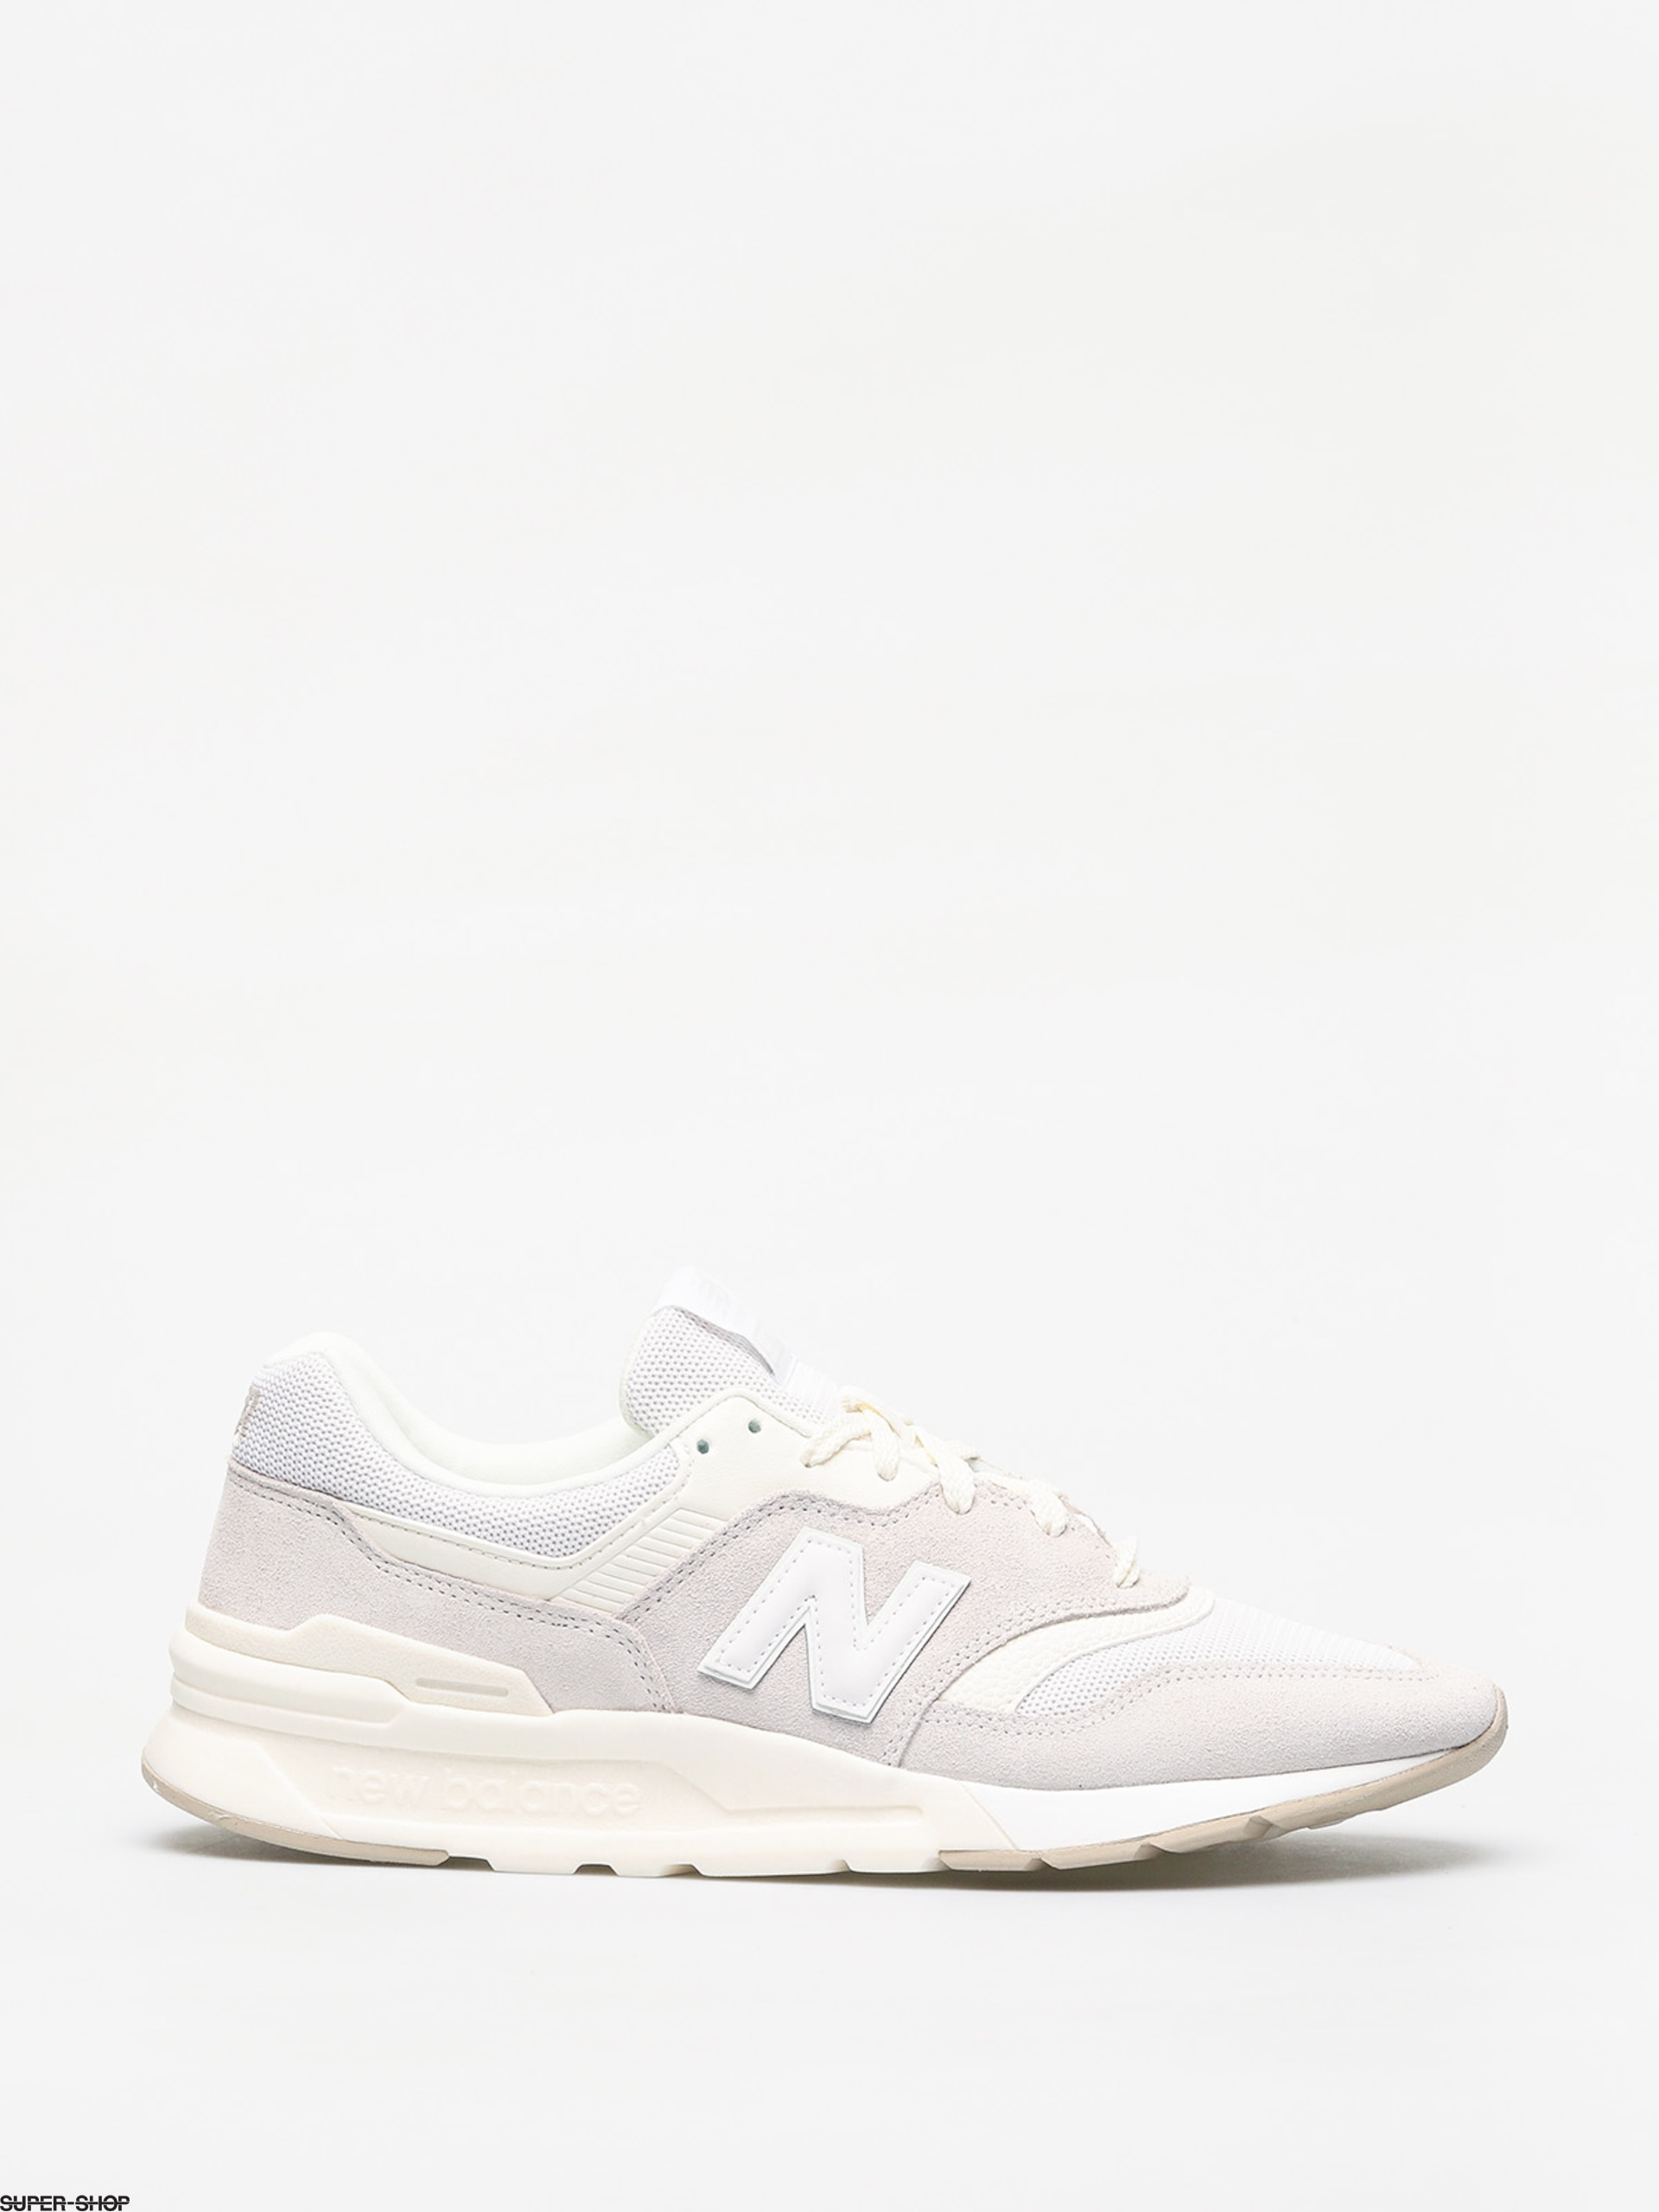 1028958-w1920-new-balance-997-shoes-white.jpg 1b6fd60c7